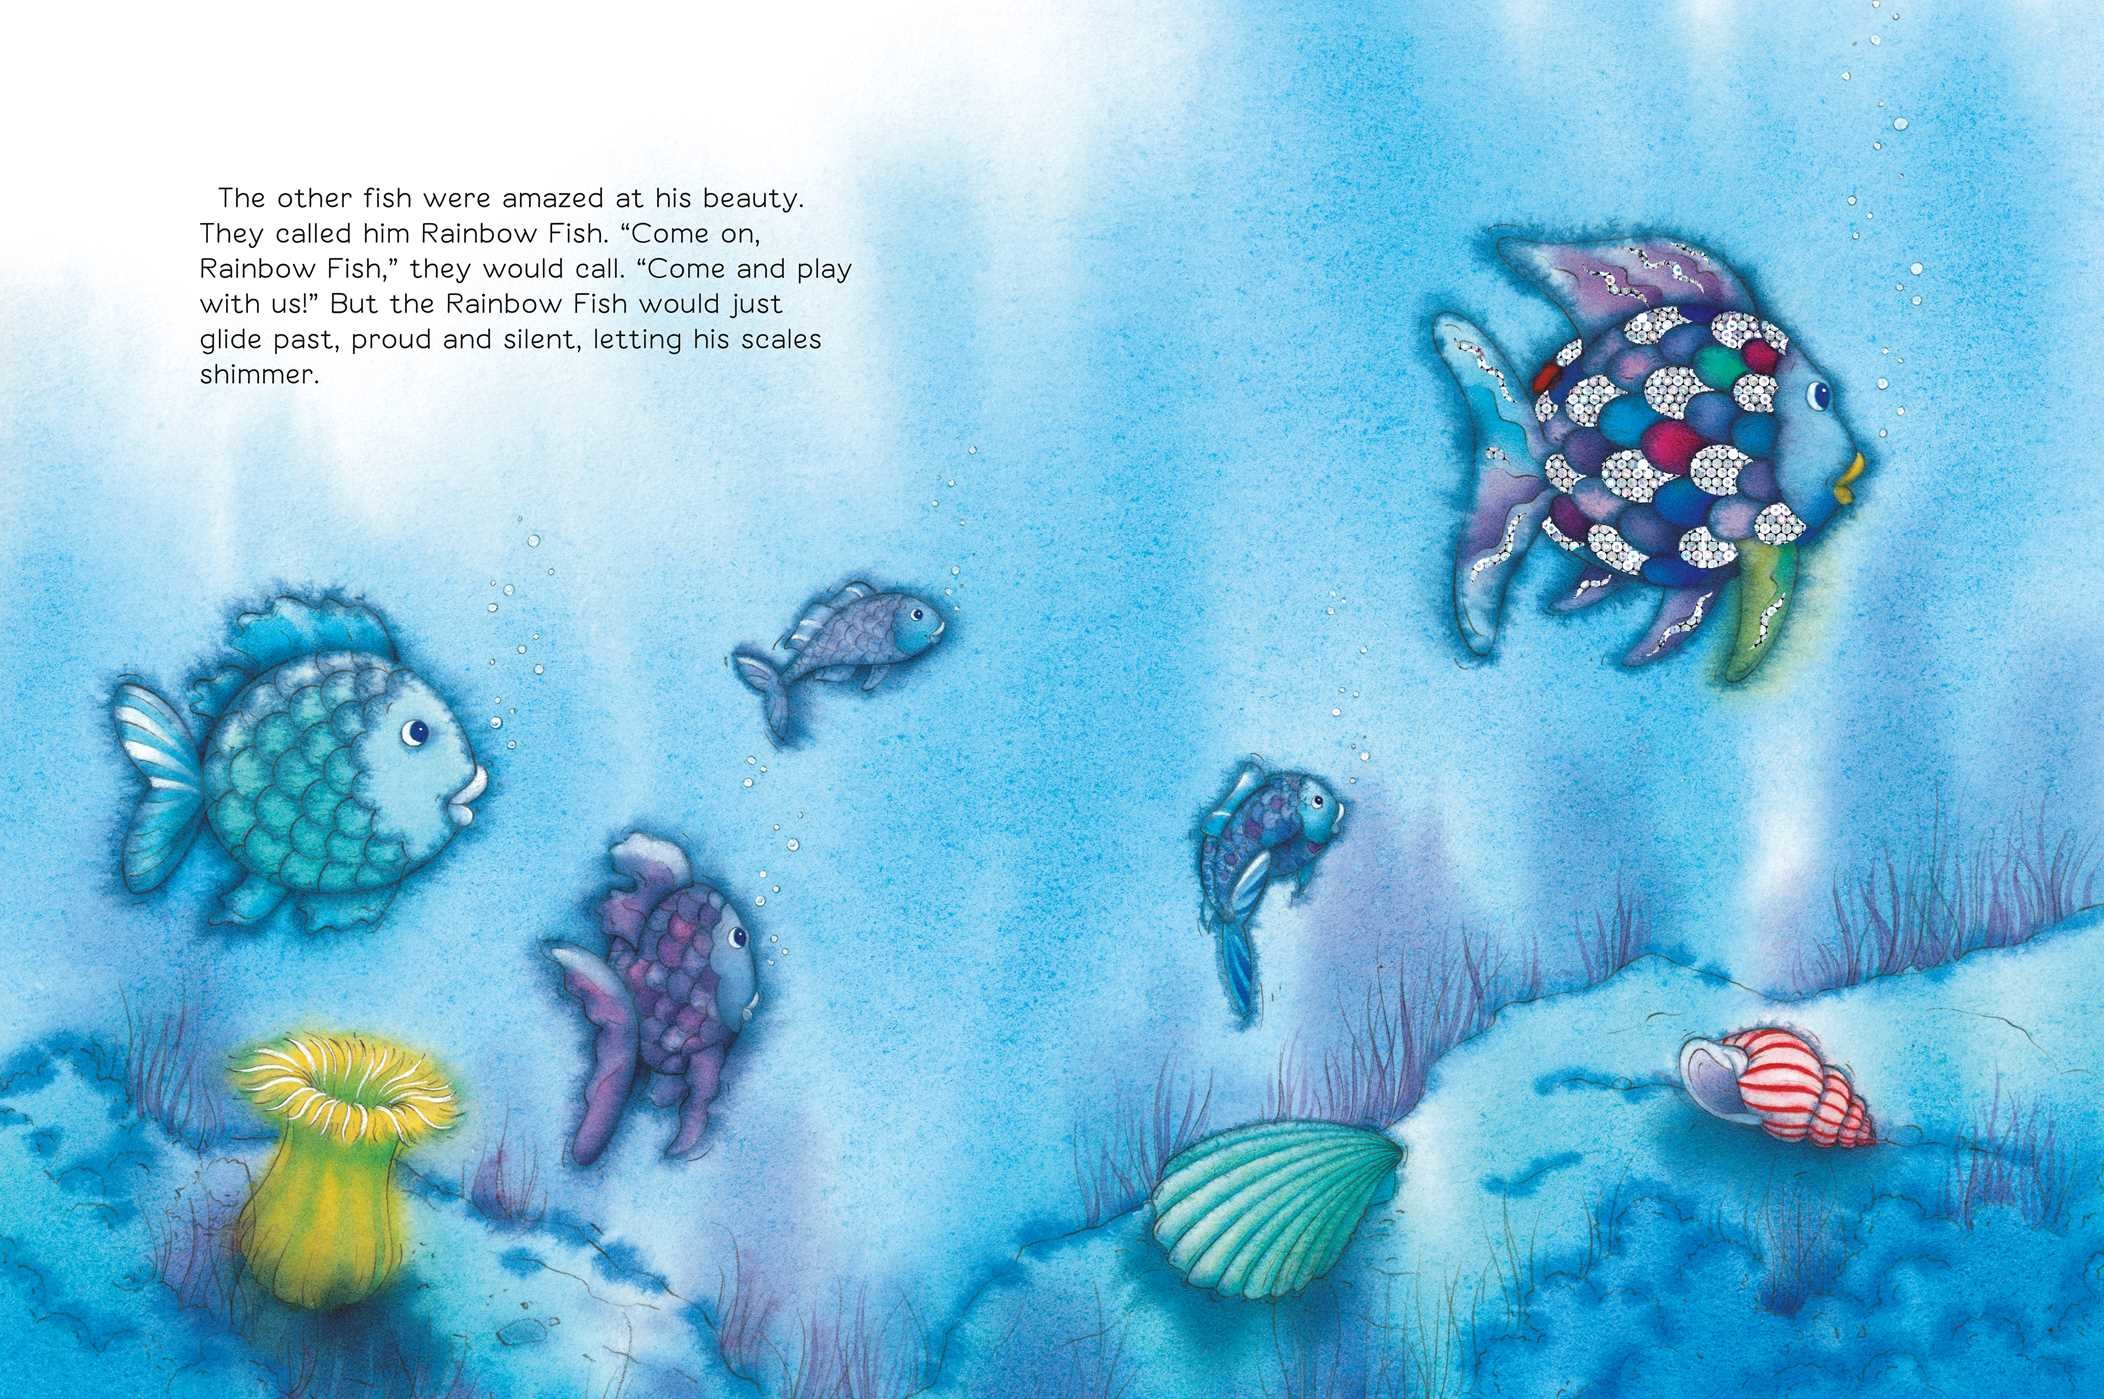 The rainbow fish big book book by marcus pfister for Rainbow fish story